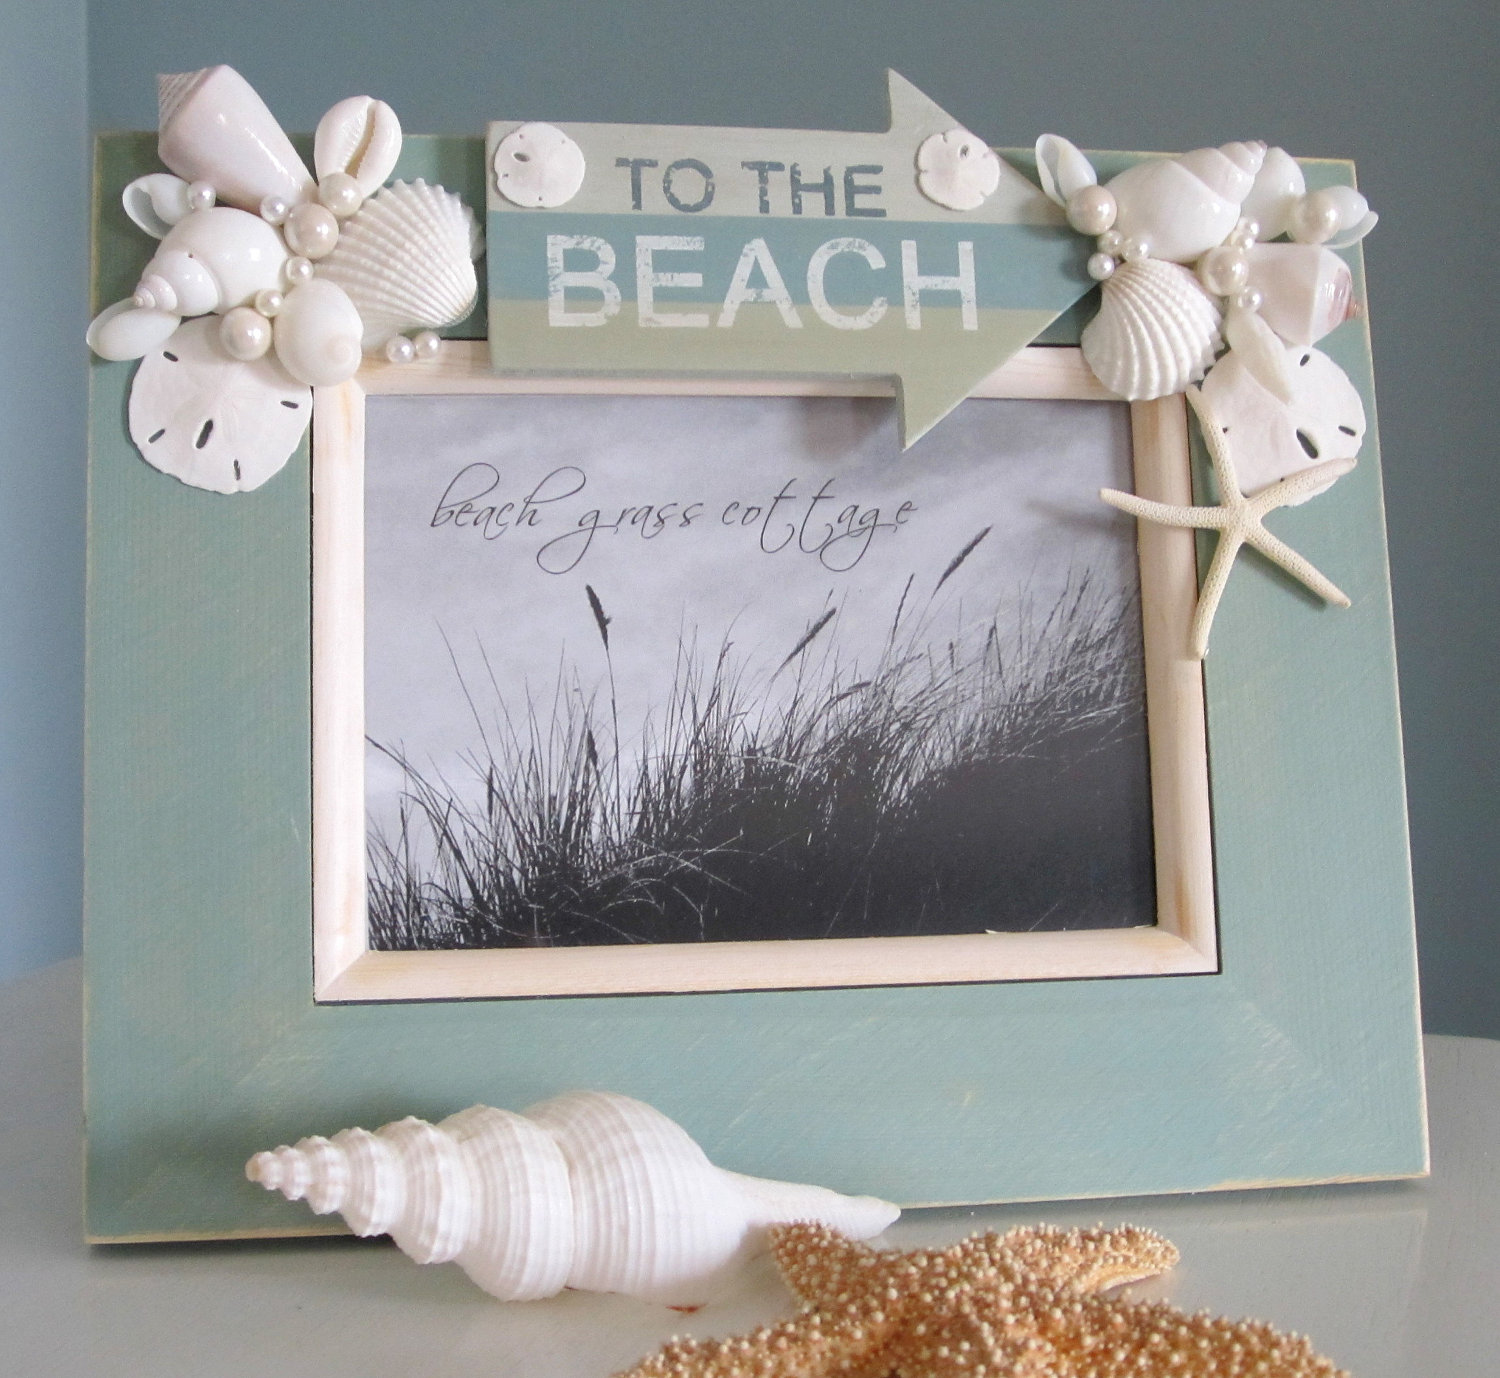 beach decor seashell frame nautical decor shell frame with beach 8x10 aqua